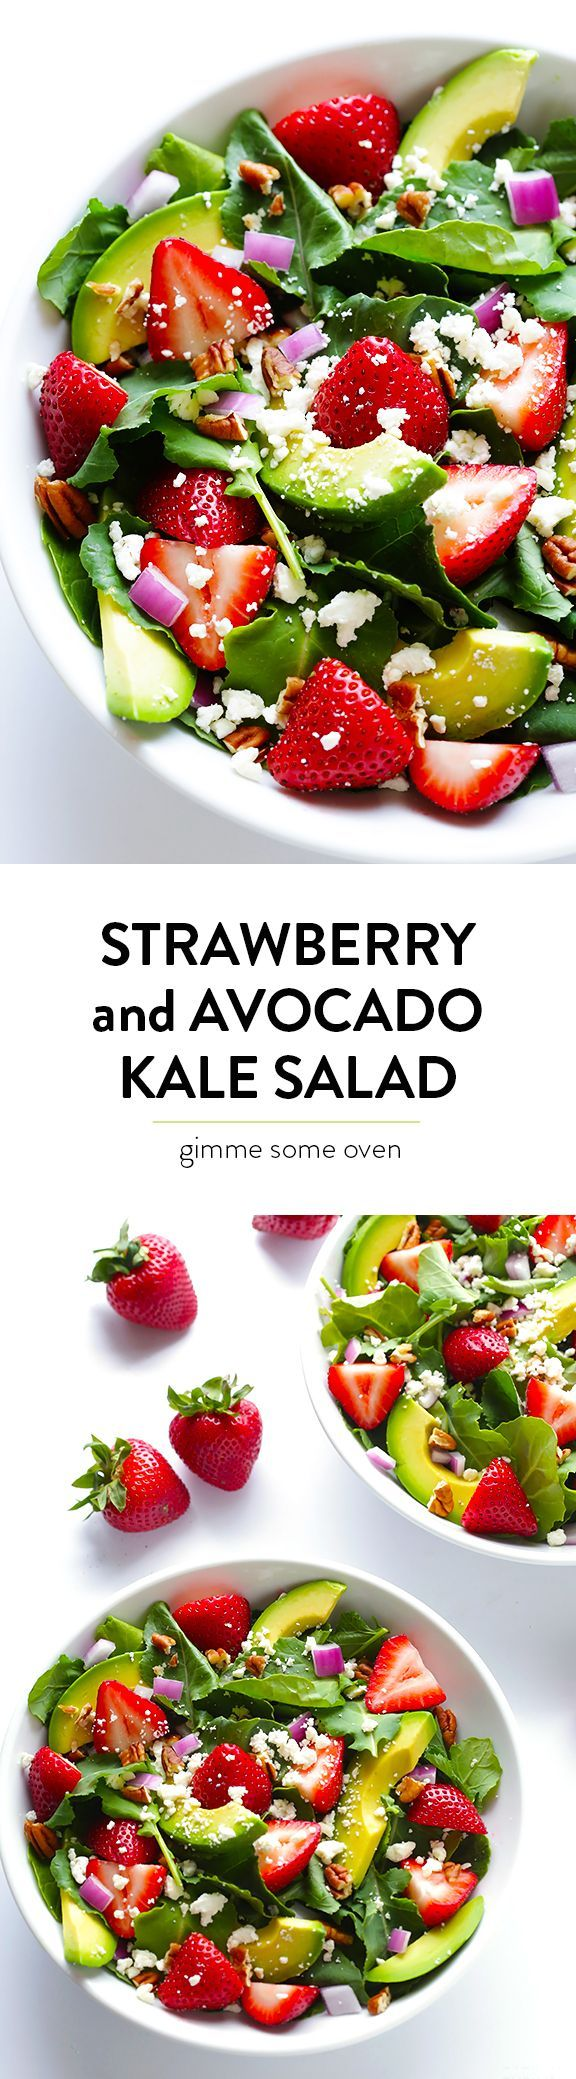 Strawberry & Avocado Kale Salad -- quick and easy to make, and always a crowd favorite! | http://gimmesomeoven.com